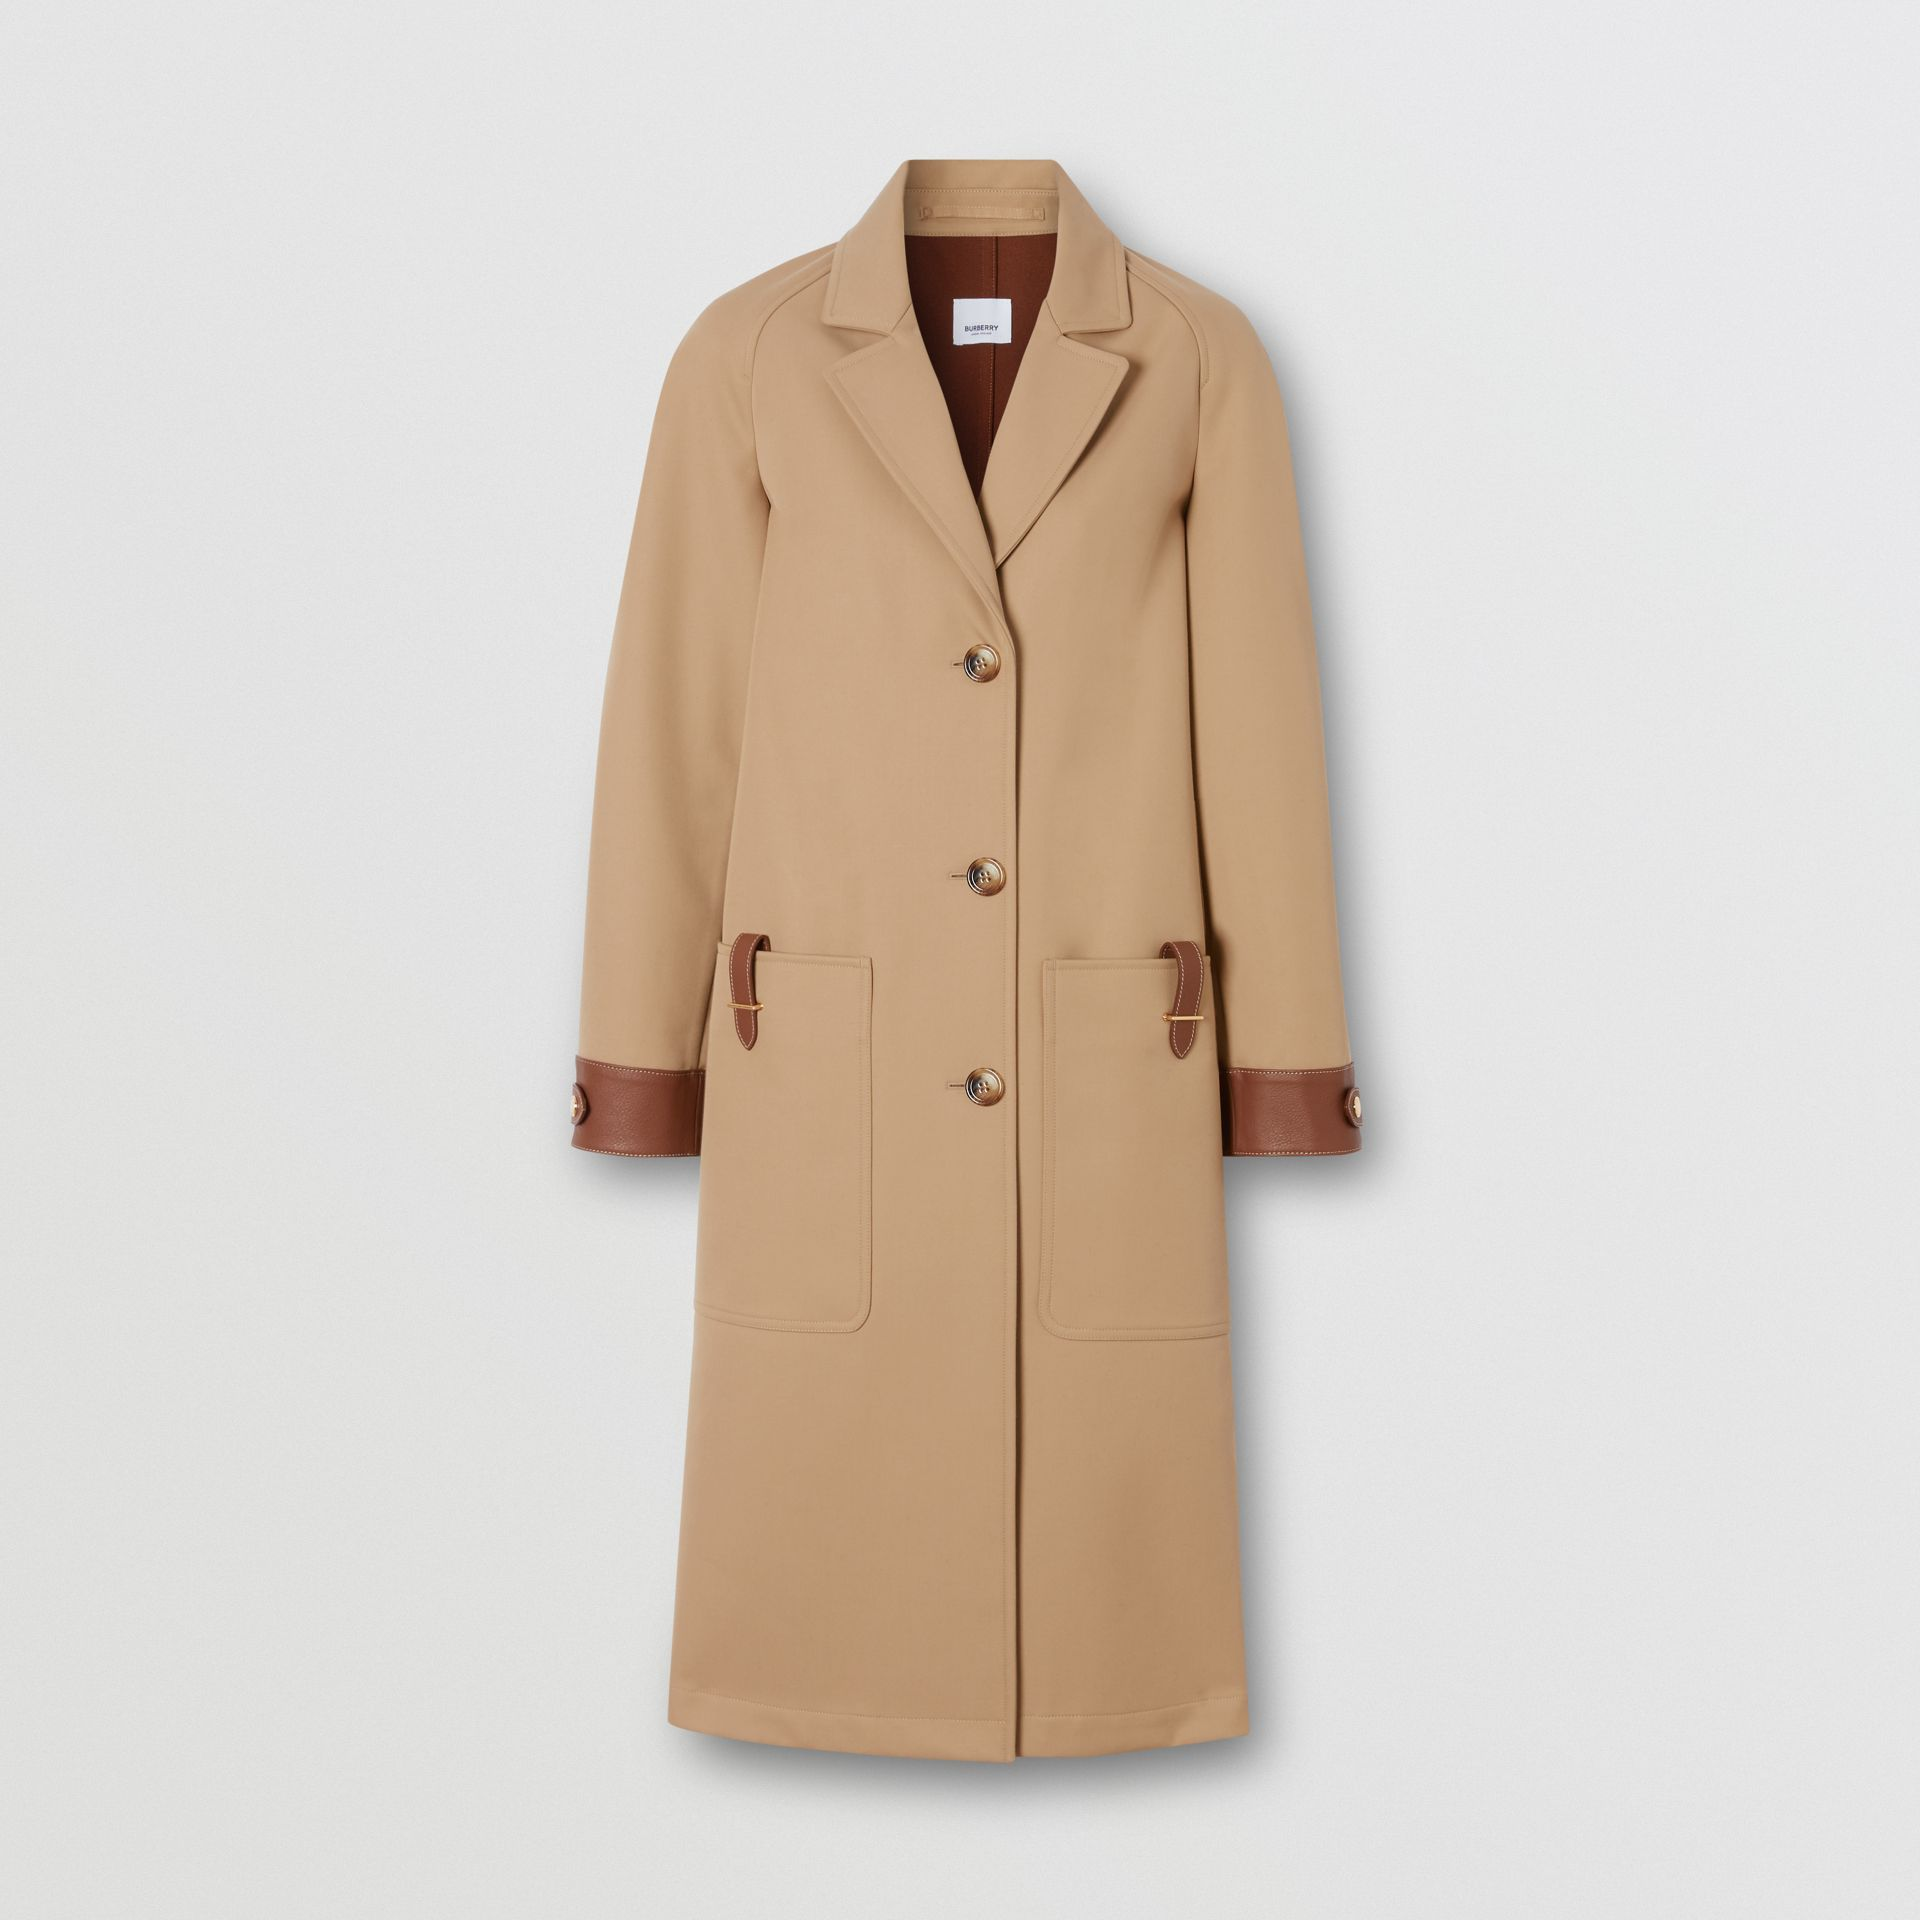 Leather Trim Bonded Cotton Lab Coat in Biscuit - Women | Burberry - gallery image 3